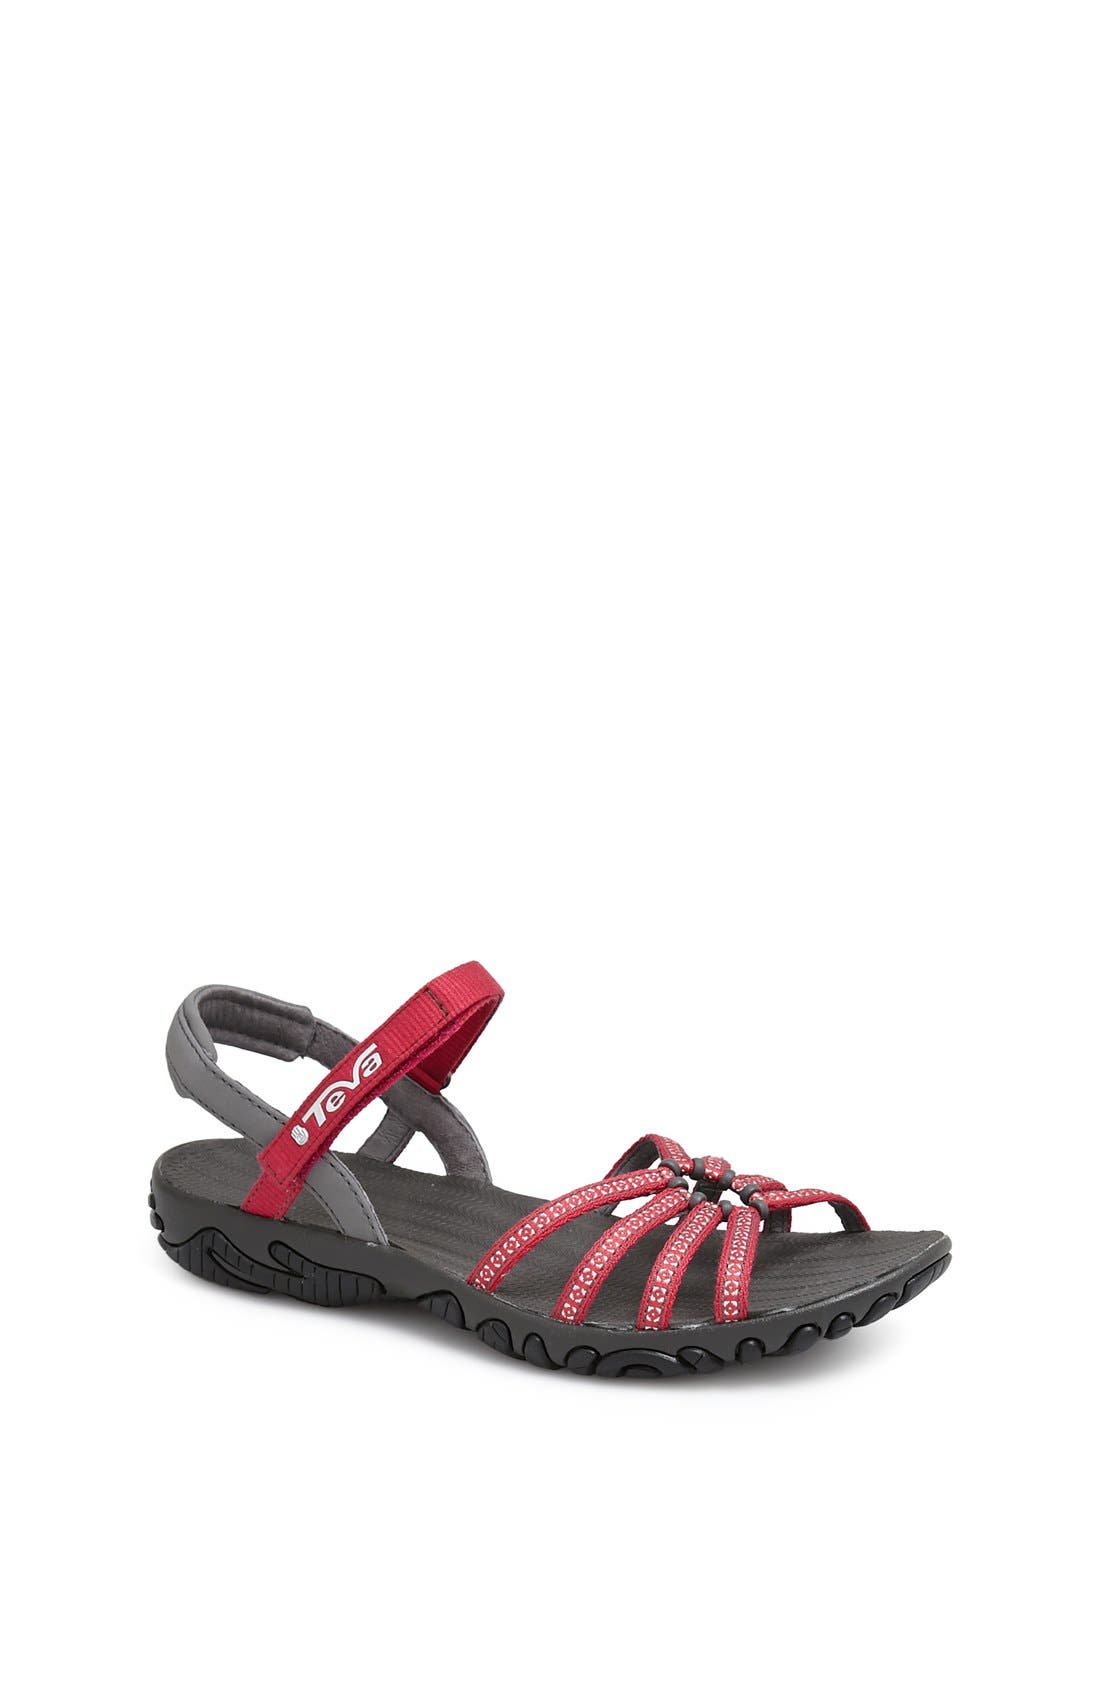 Alternate Image 1 Selected - Teva 'Kayenta' Sandal